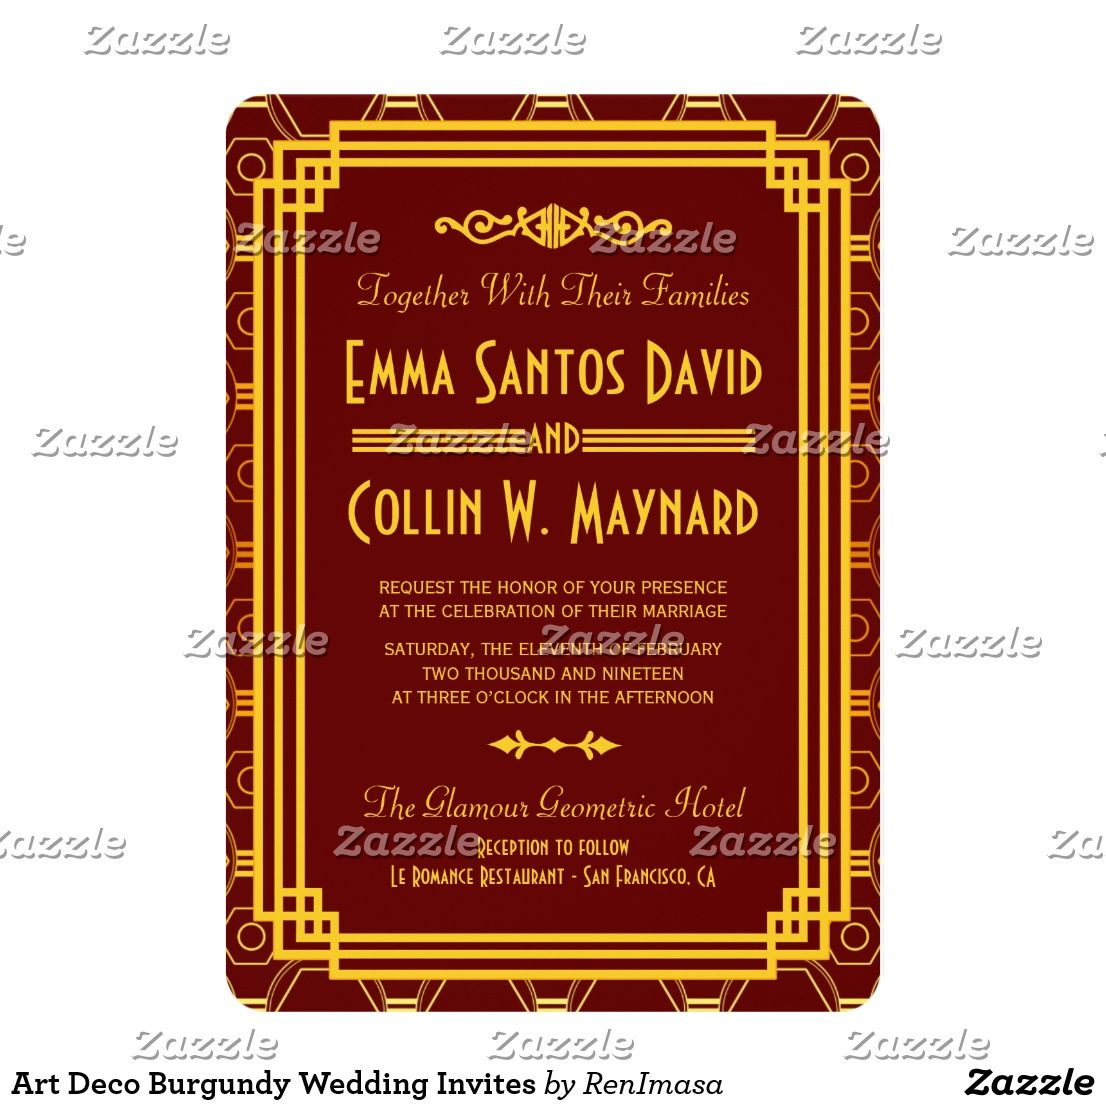 Art Deco Burgundy Wedding Invites | ART DECO WEDDING Invitations ...